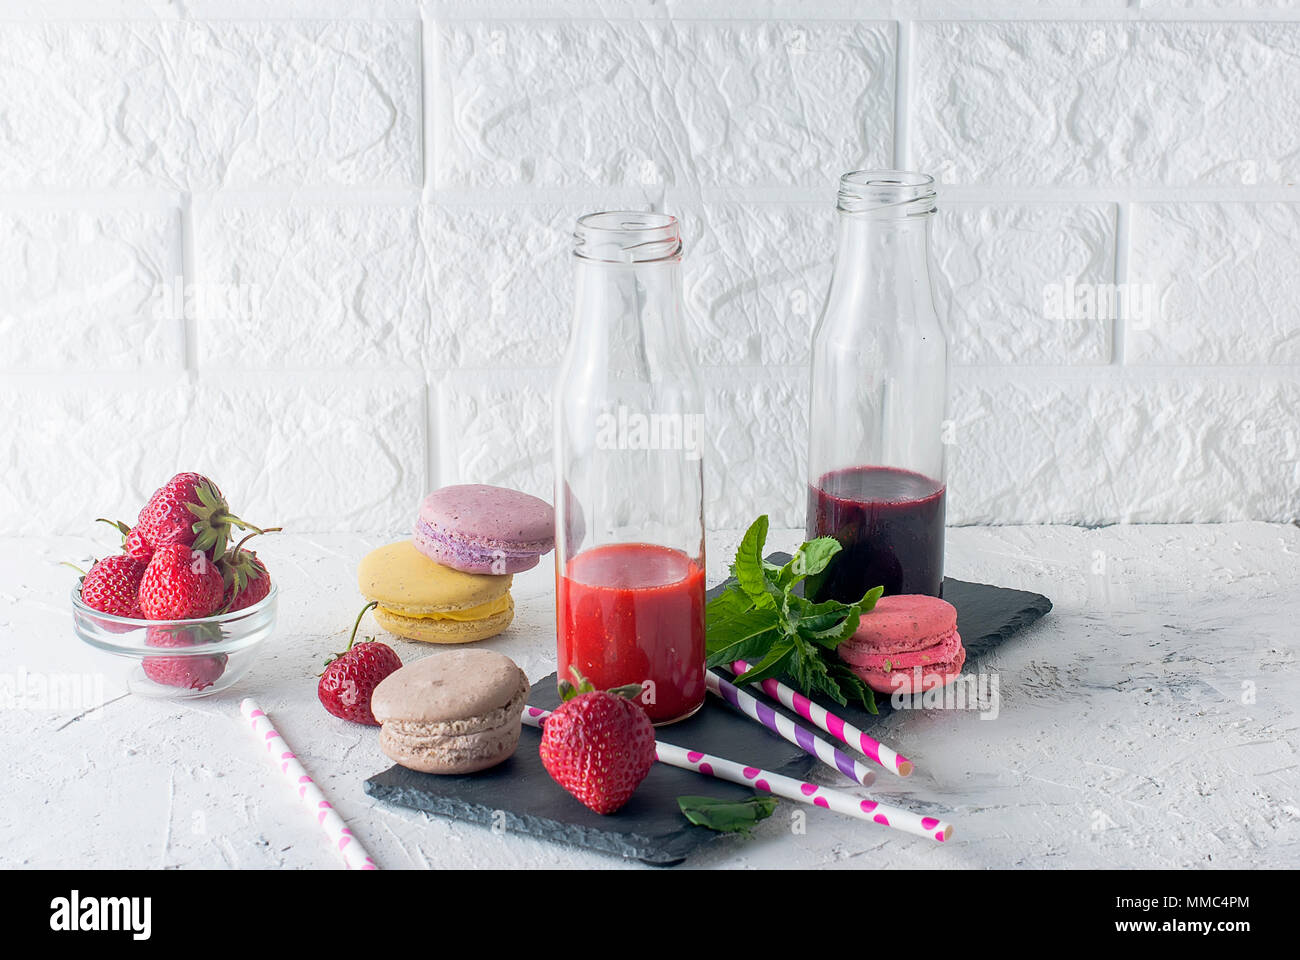 Refreshing strawberry and blueberry smoothies in a glass bottle close-up and  bowl of fresh strawberrieson the table. - Stock Image